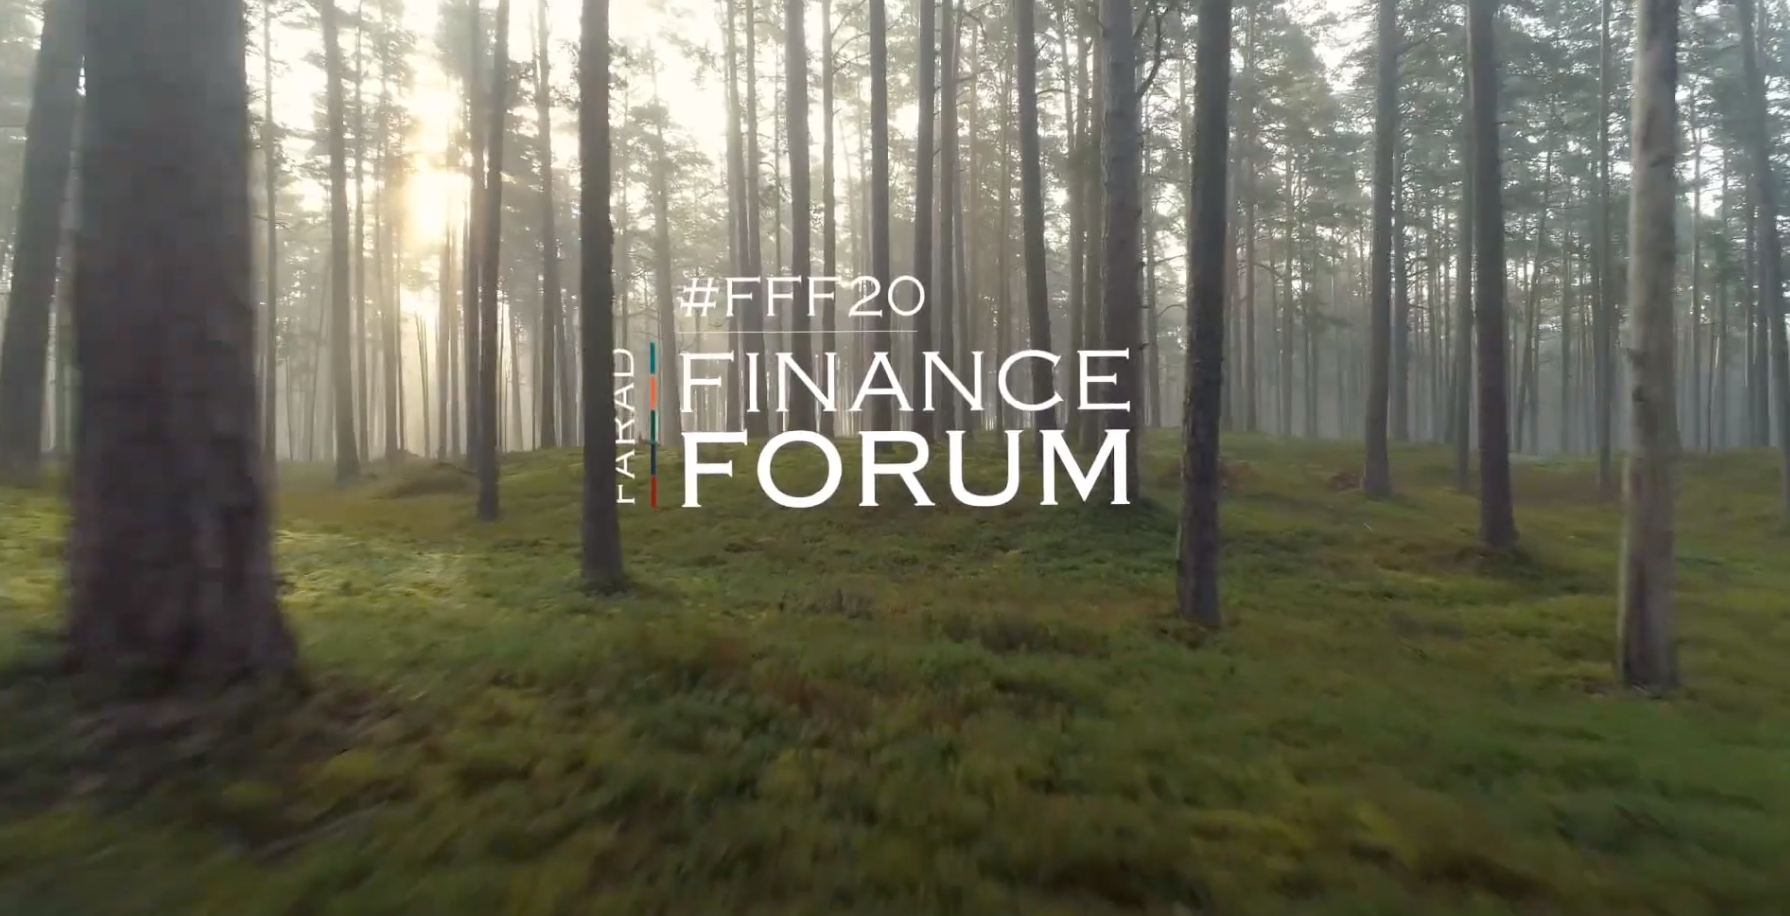 Farad Finance Forum